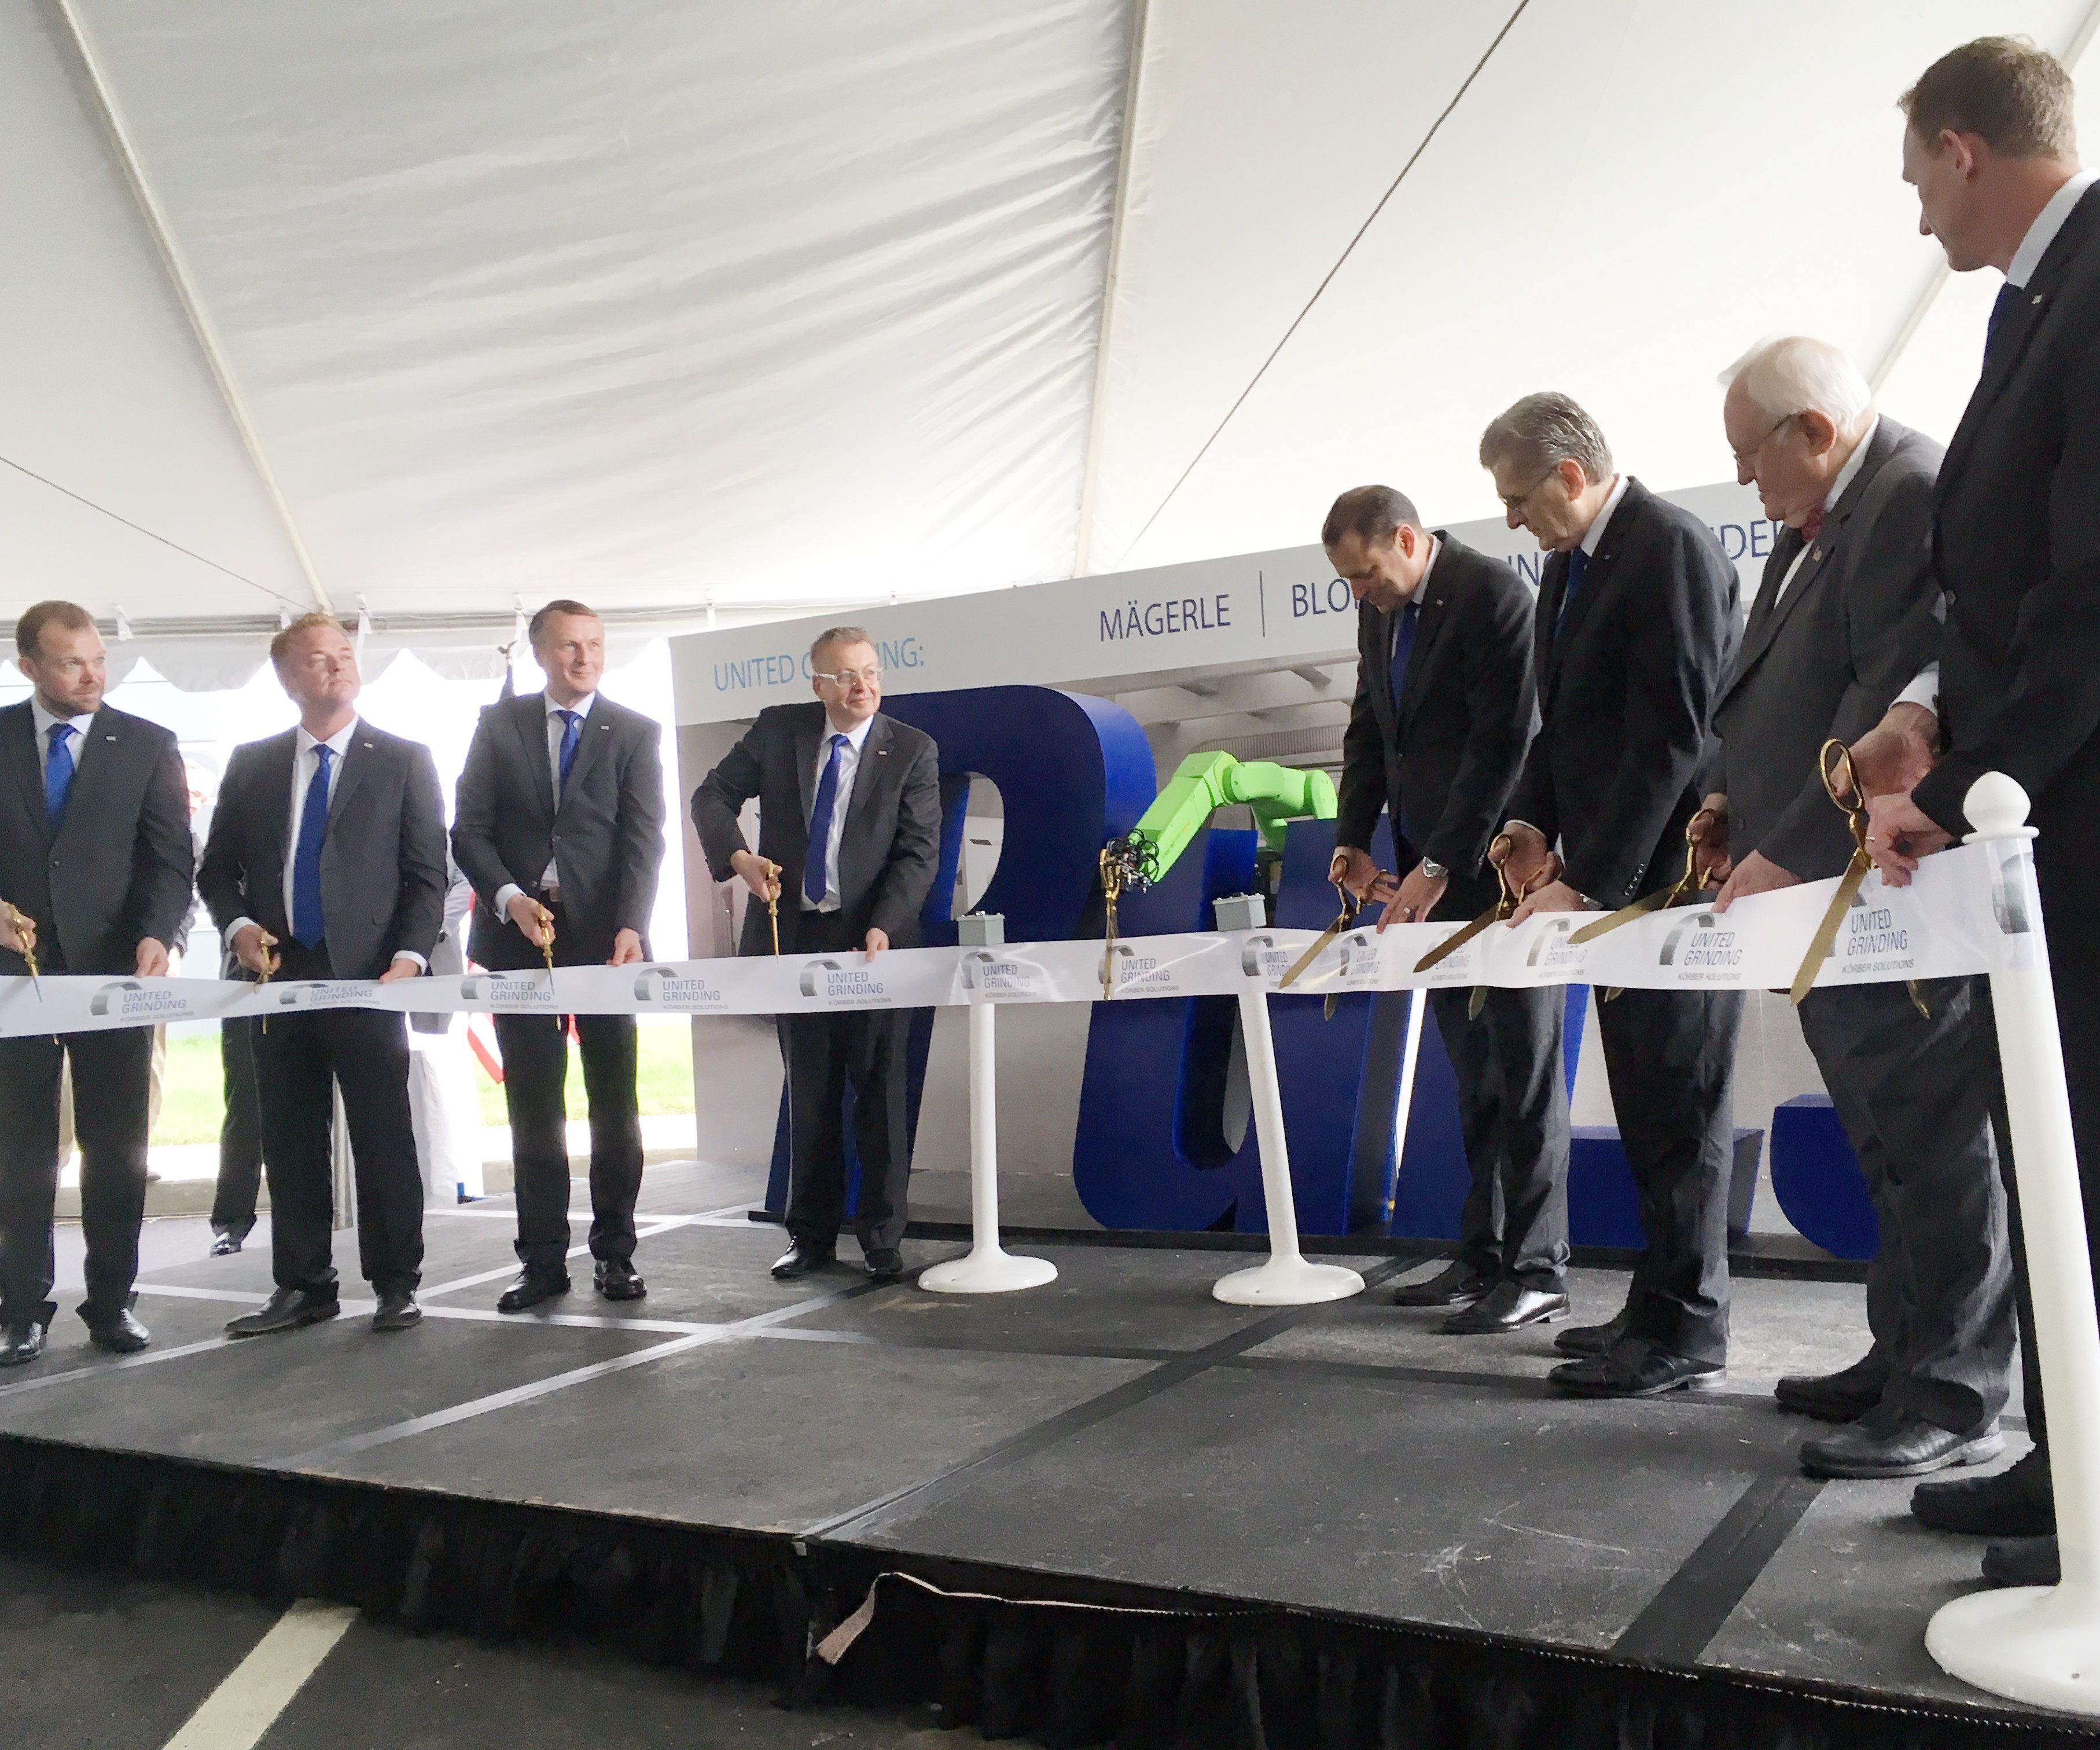 United Grinding Ribbon-Cutting